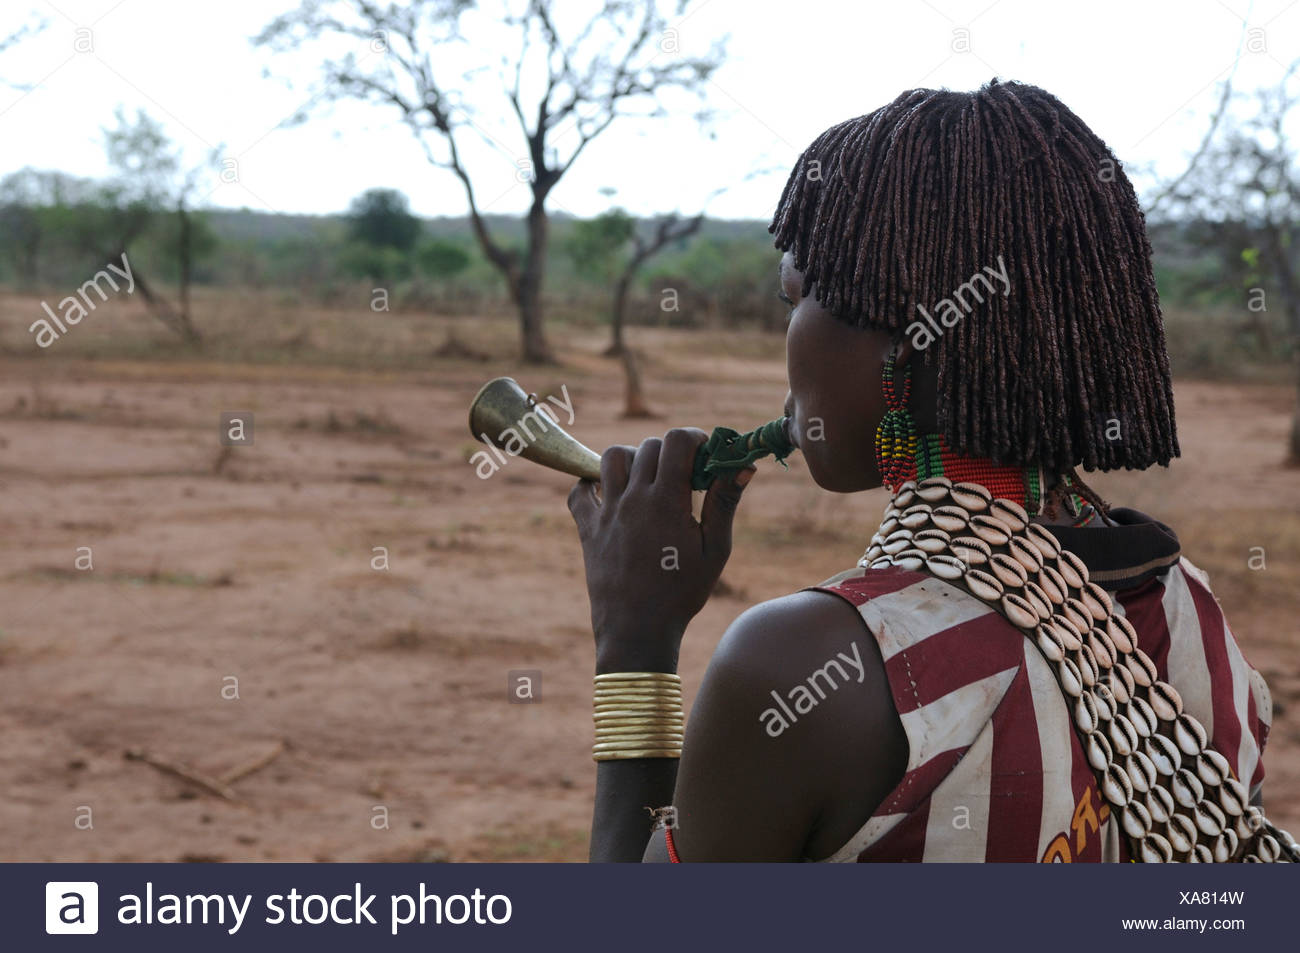 Young woman from the Hamar tribe blowing a horn in order to gain attention during the bull-leaping ceremony, an initiation rite - Stock Image